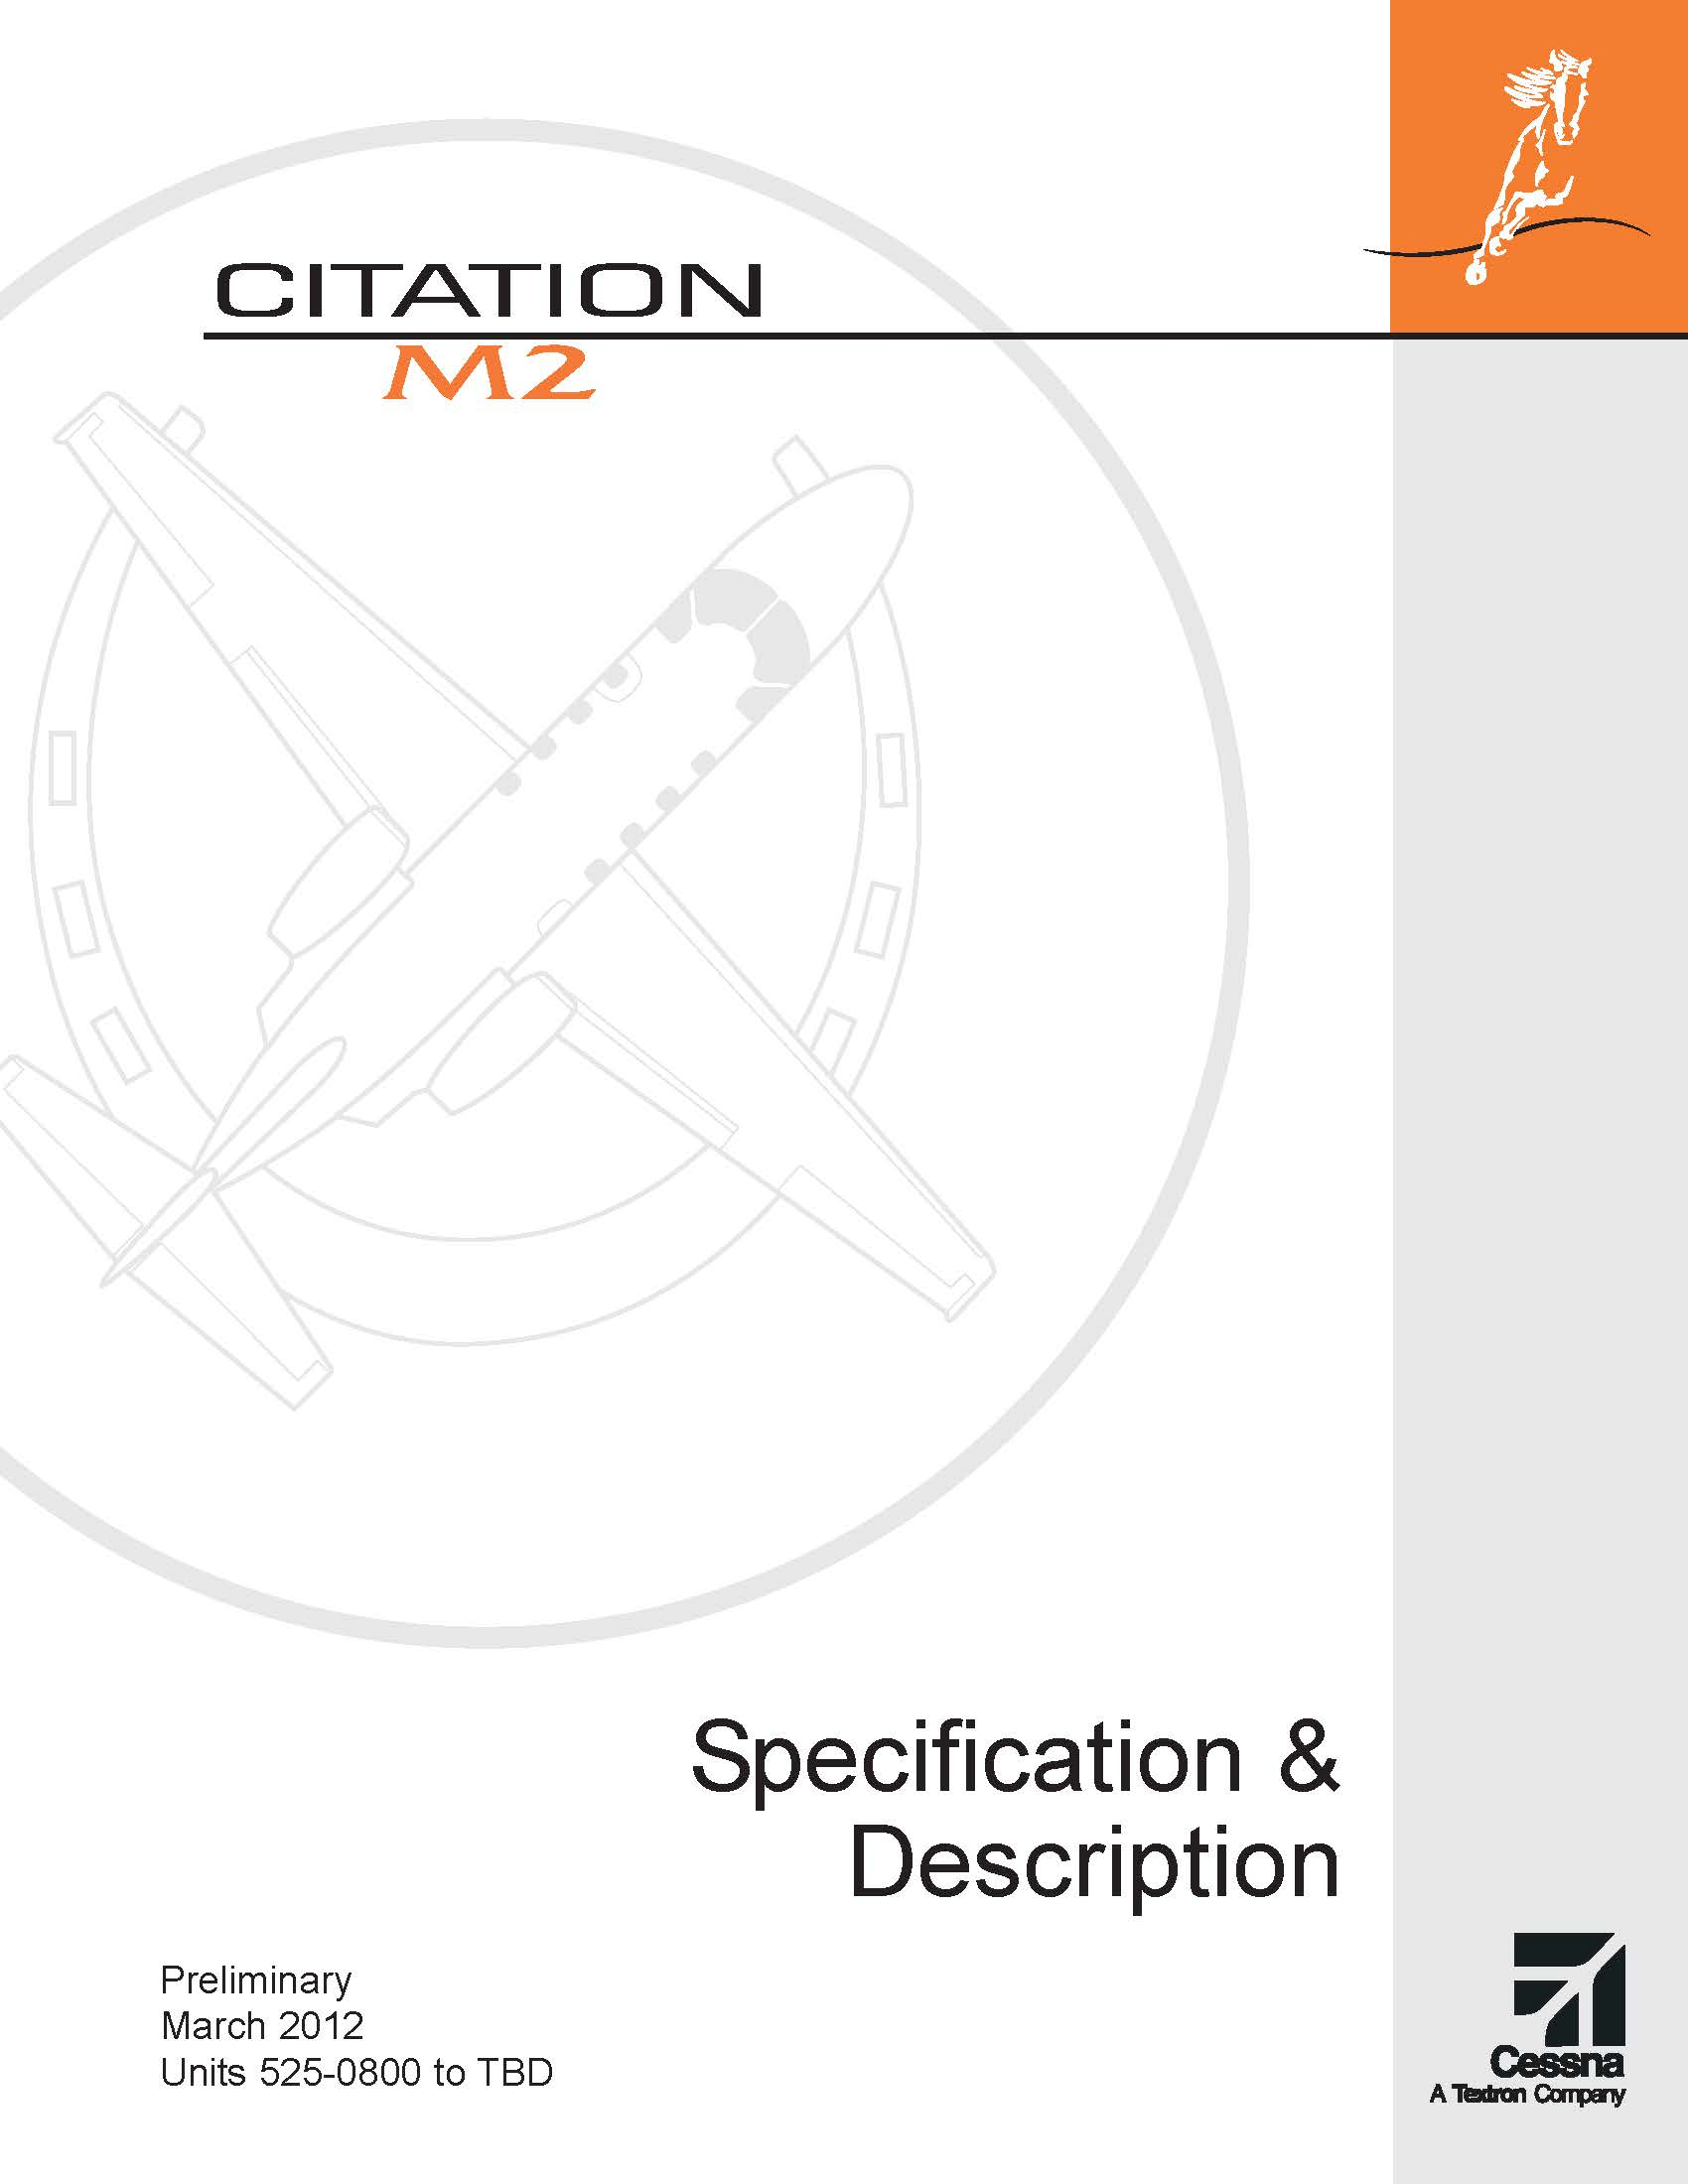 Citation M2 spec and description electronic brochure